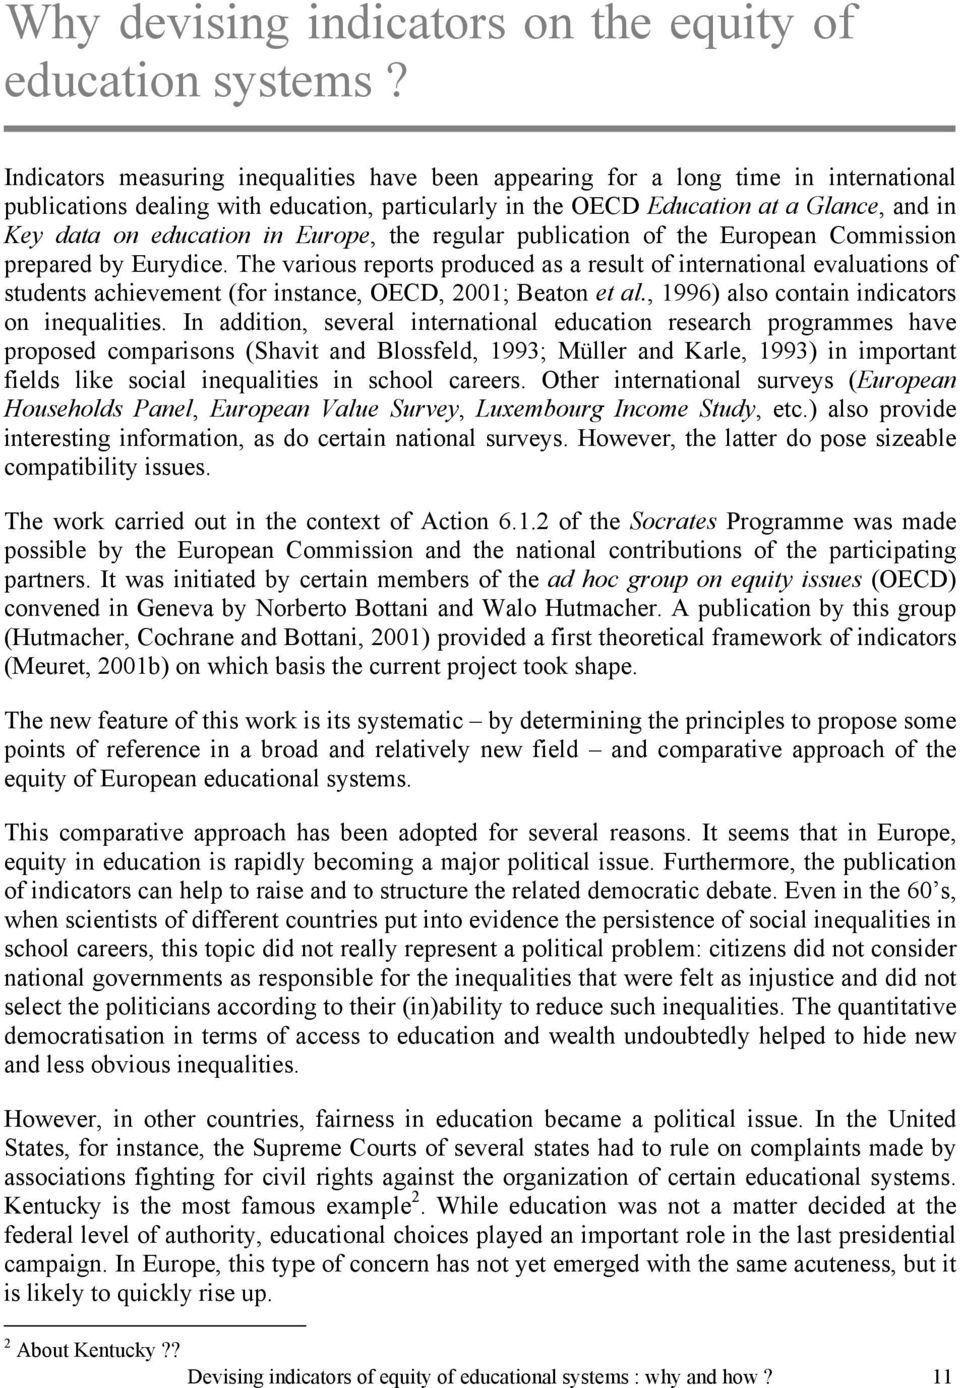 education in Europe, the regular publication of the European Commission prepared by Eurydice.